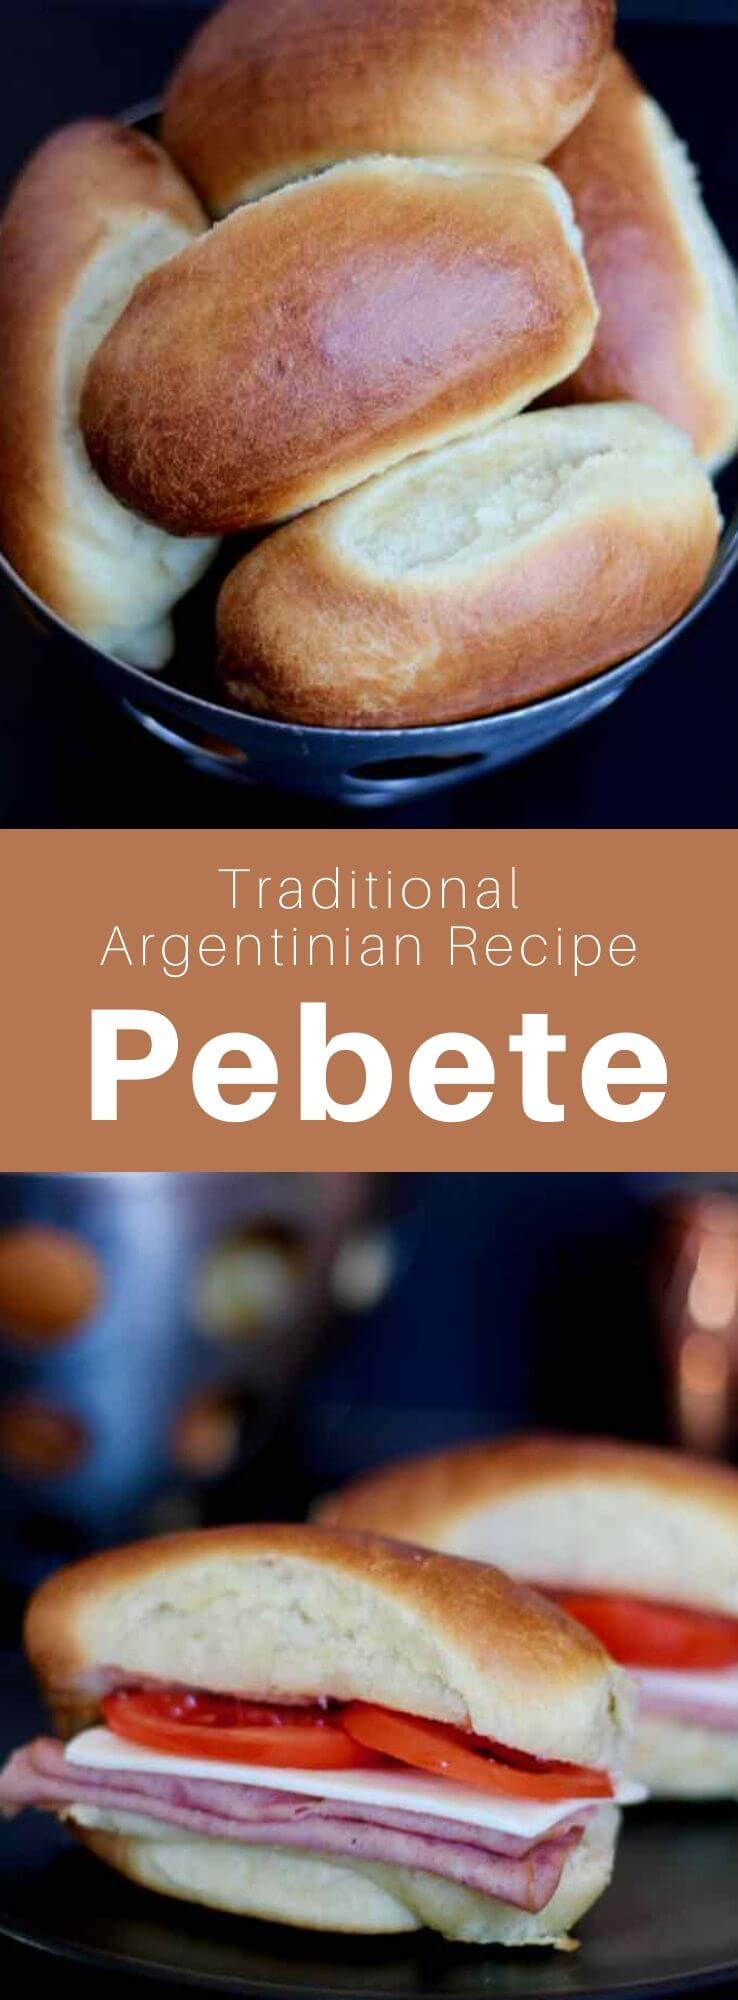 The pebete (or pan de Viena) is a bun, typical of the Argentinian and Uruguayan cuisines, which is mainly used to prepare sandwiches. #Argentina #ArgentinianRecipe #ArgentinianFood #ArgentinianCuisine #WorldCuisine #196flavors